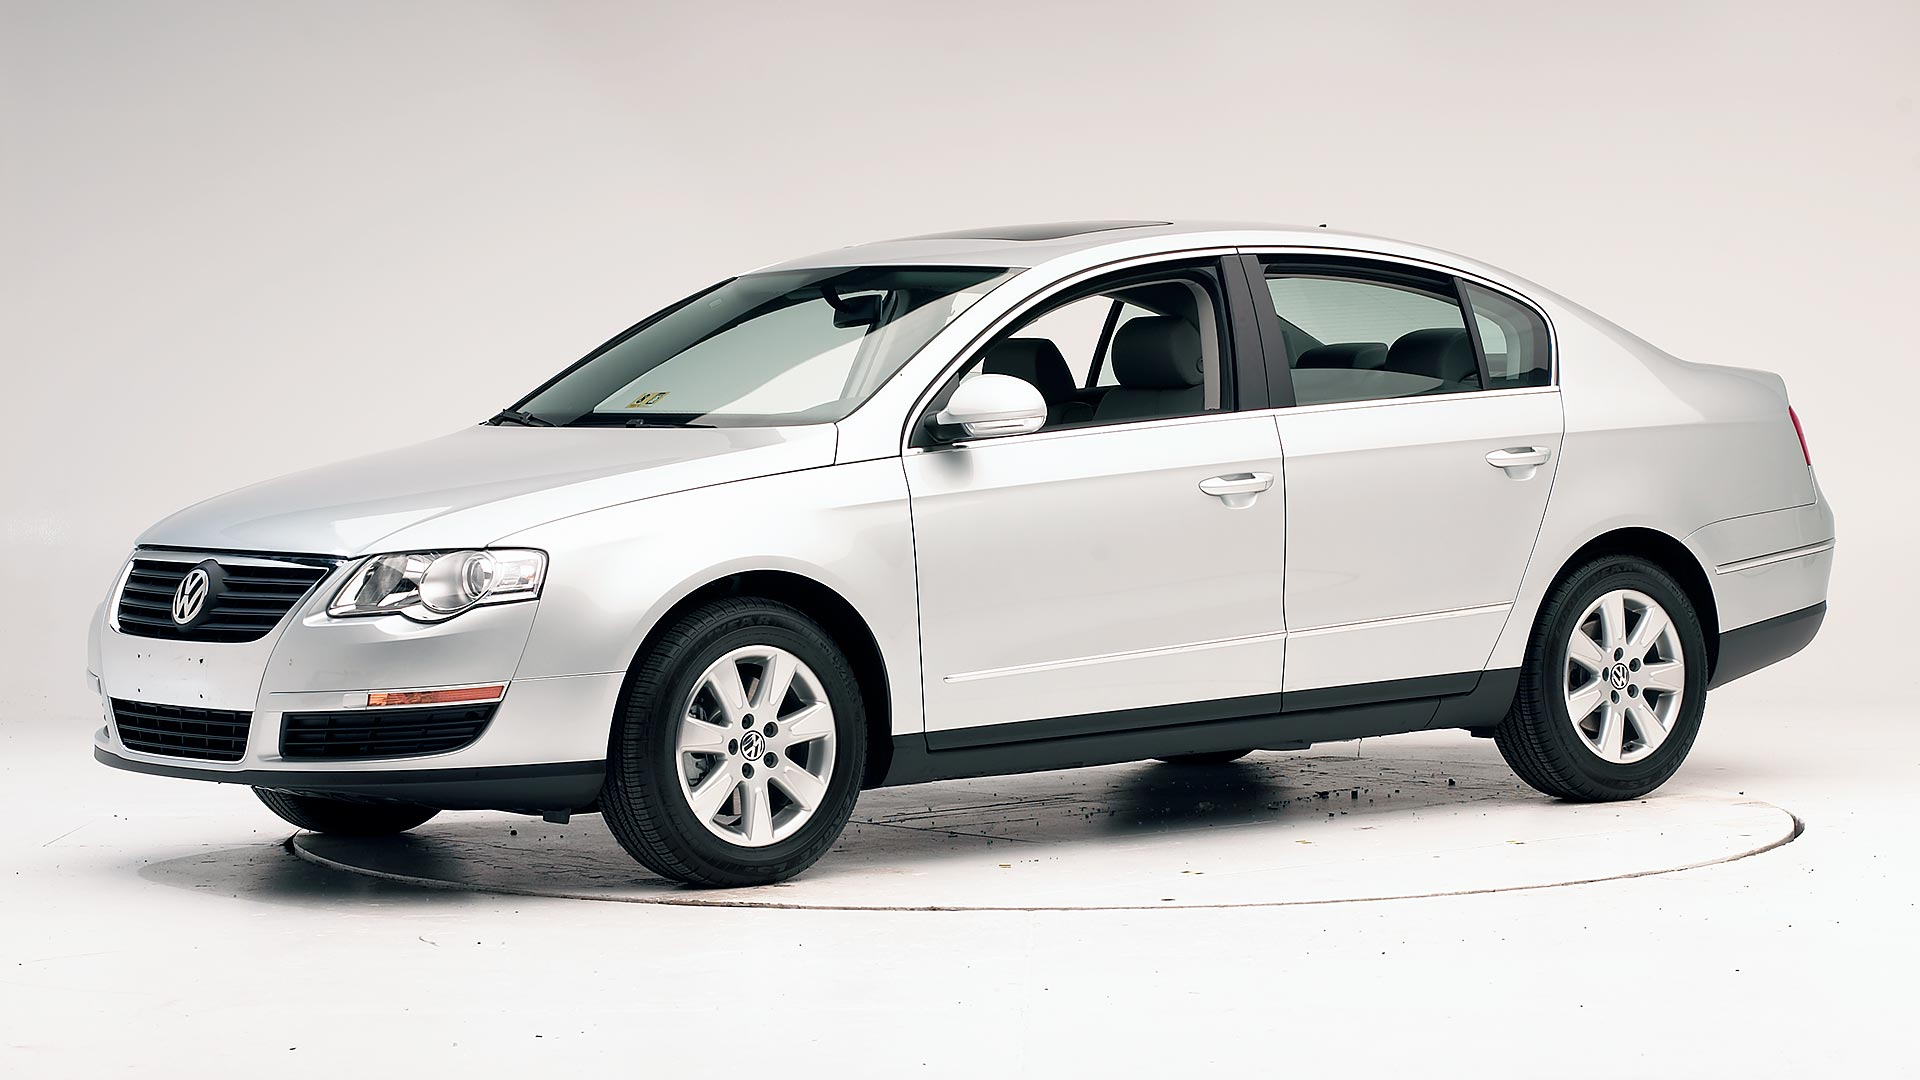 2006 Volkswagen Passat 4-door sedan